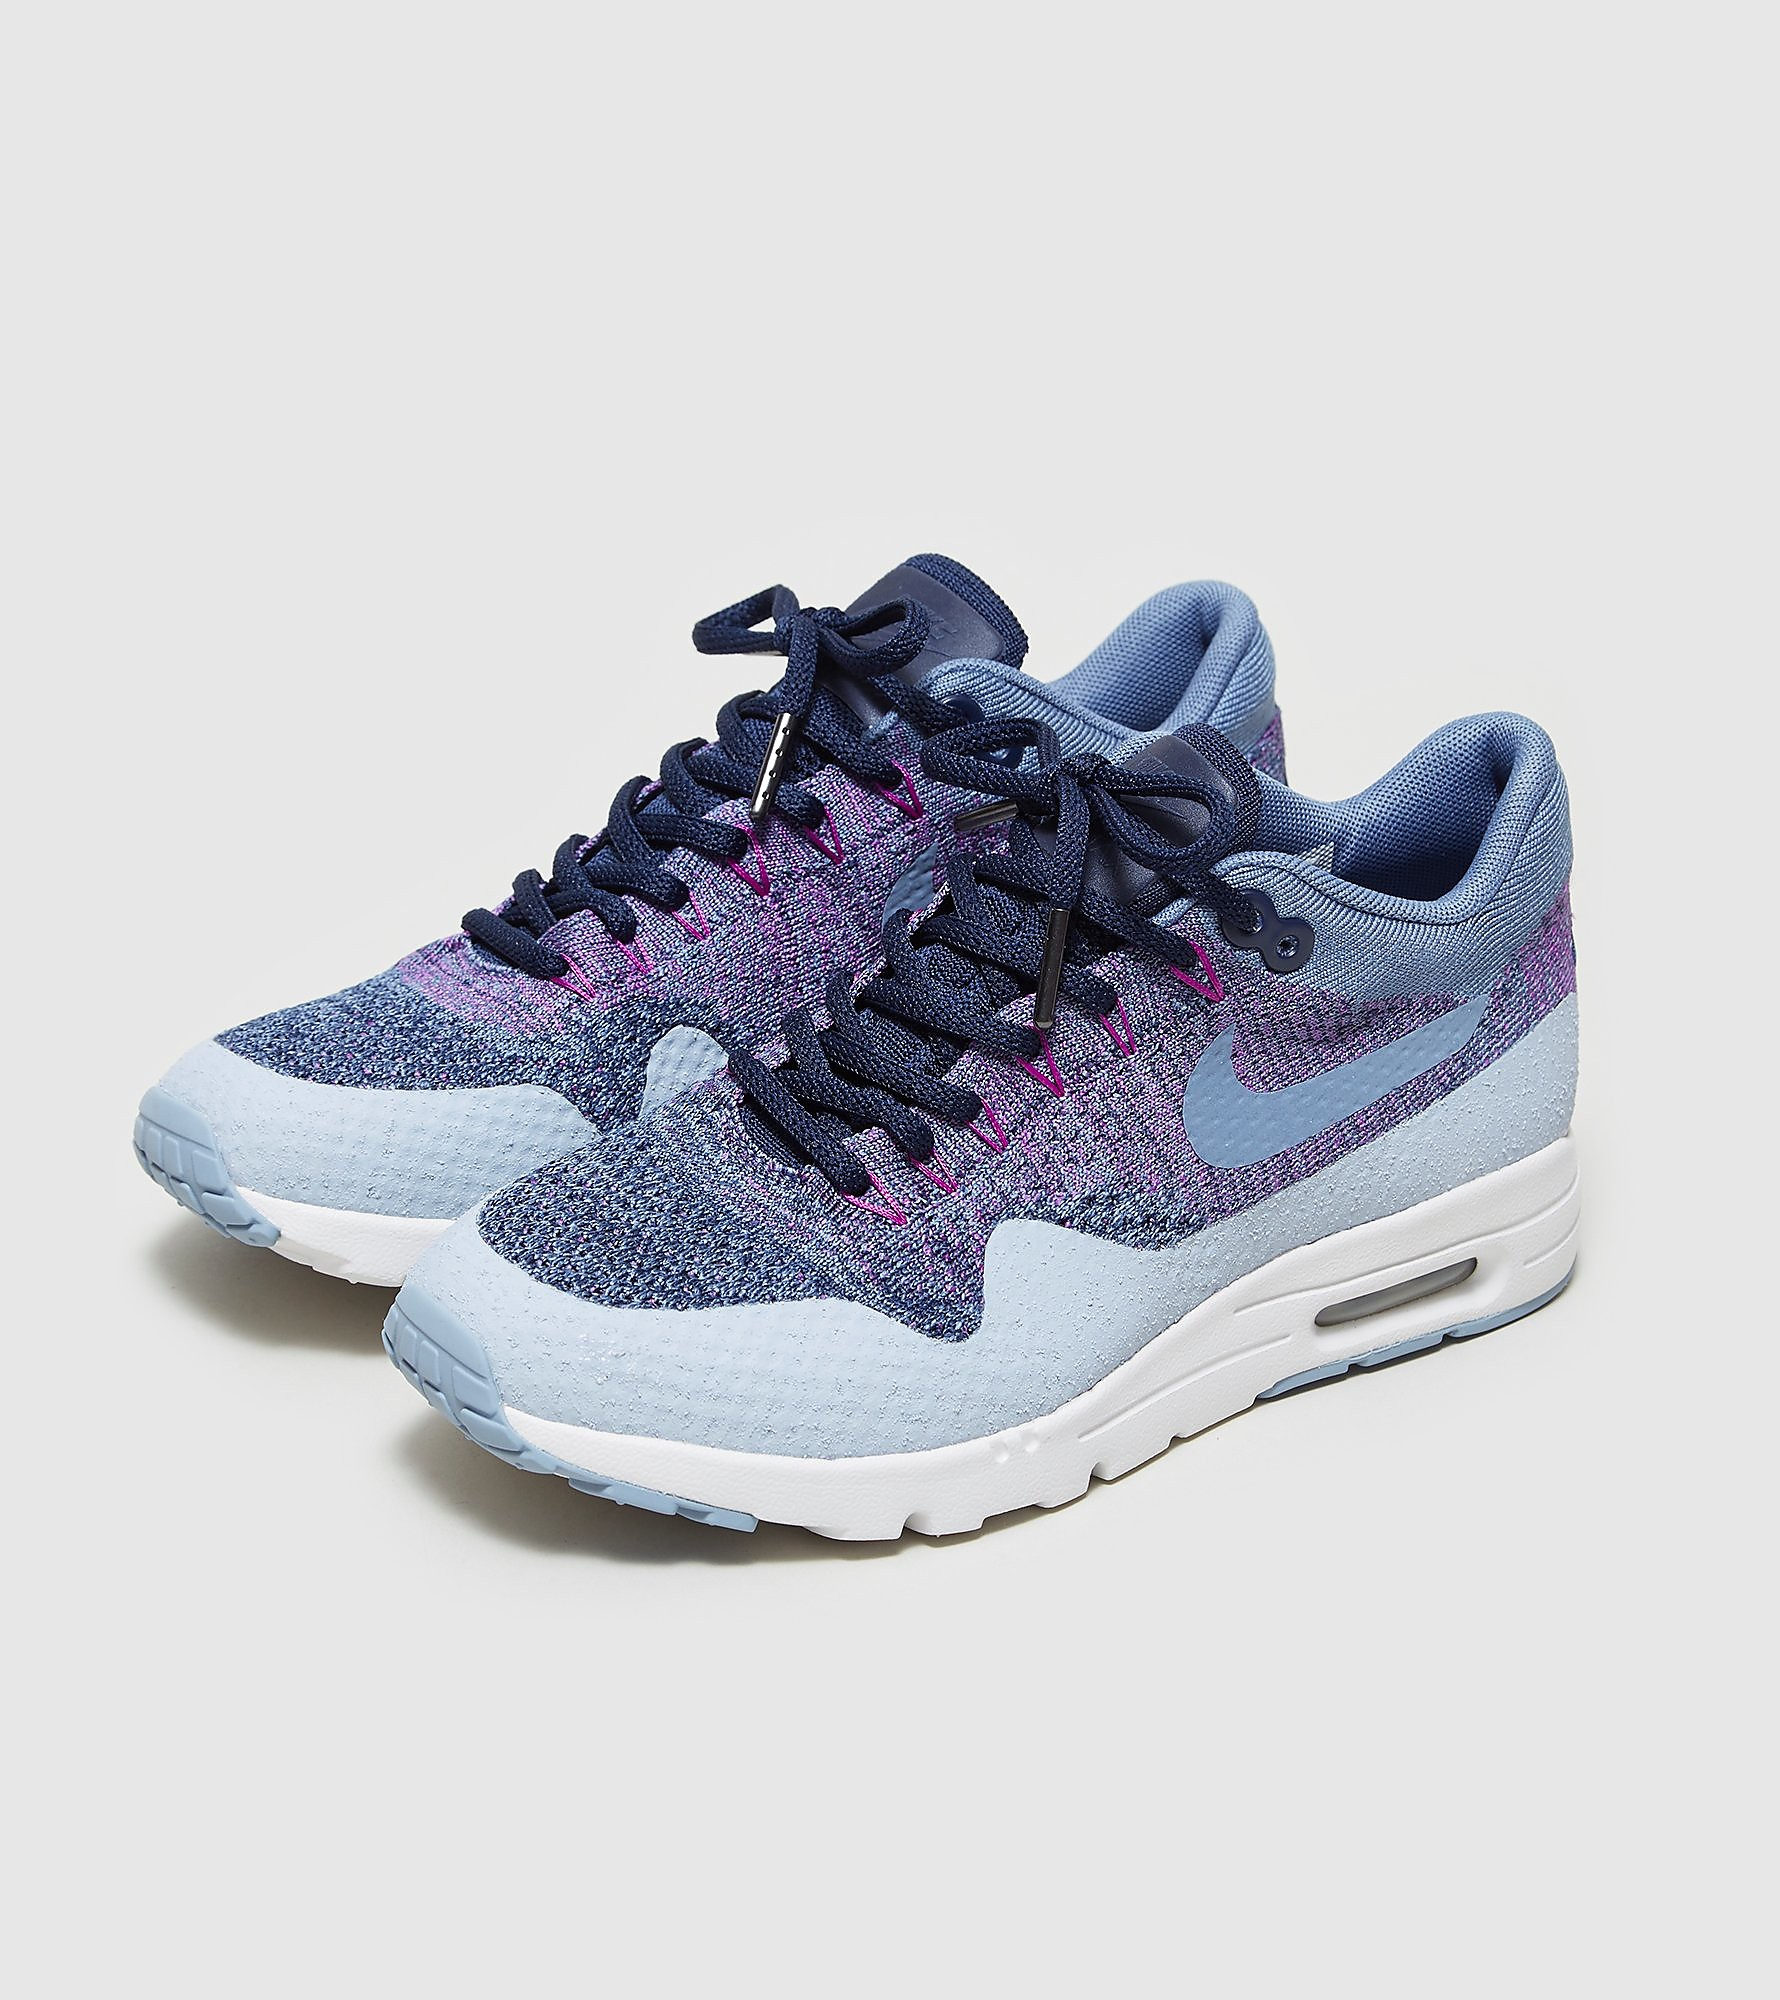 Nike Air Max 1 Ultra Flyknit Women's